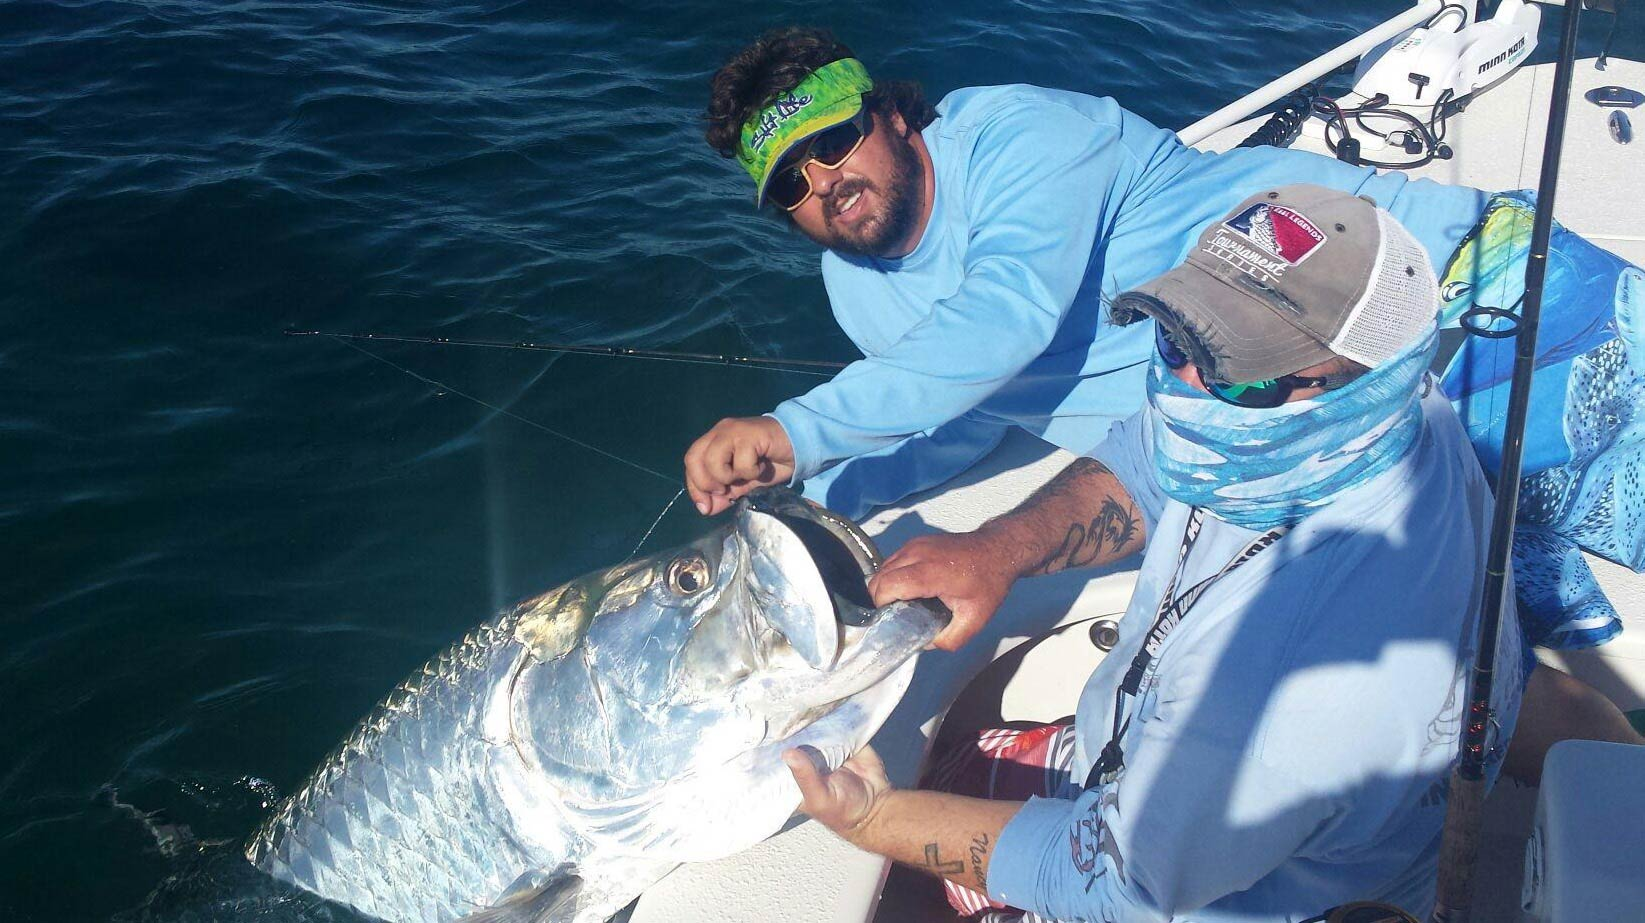 Two anglers leaning off the edge of the boat, holding a massive Tarpon